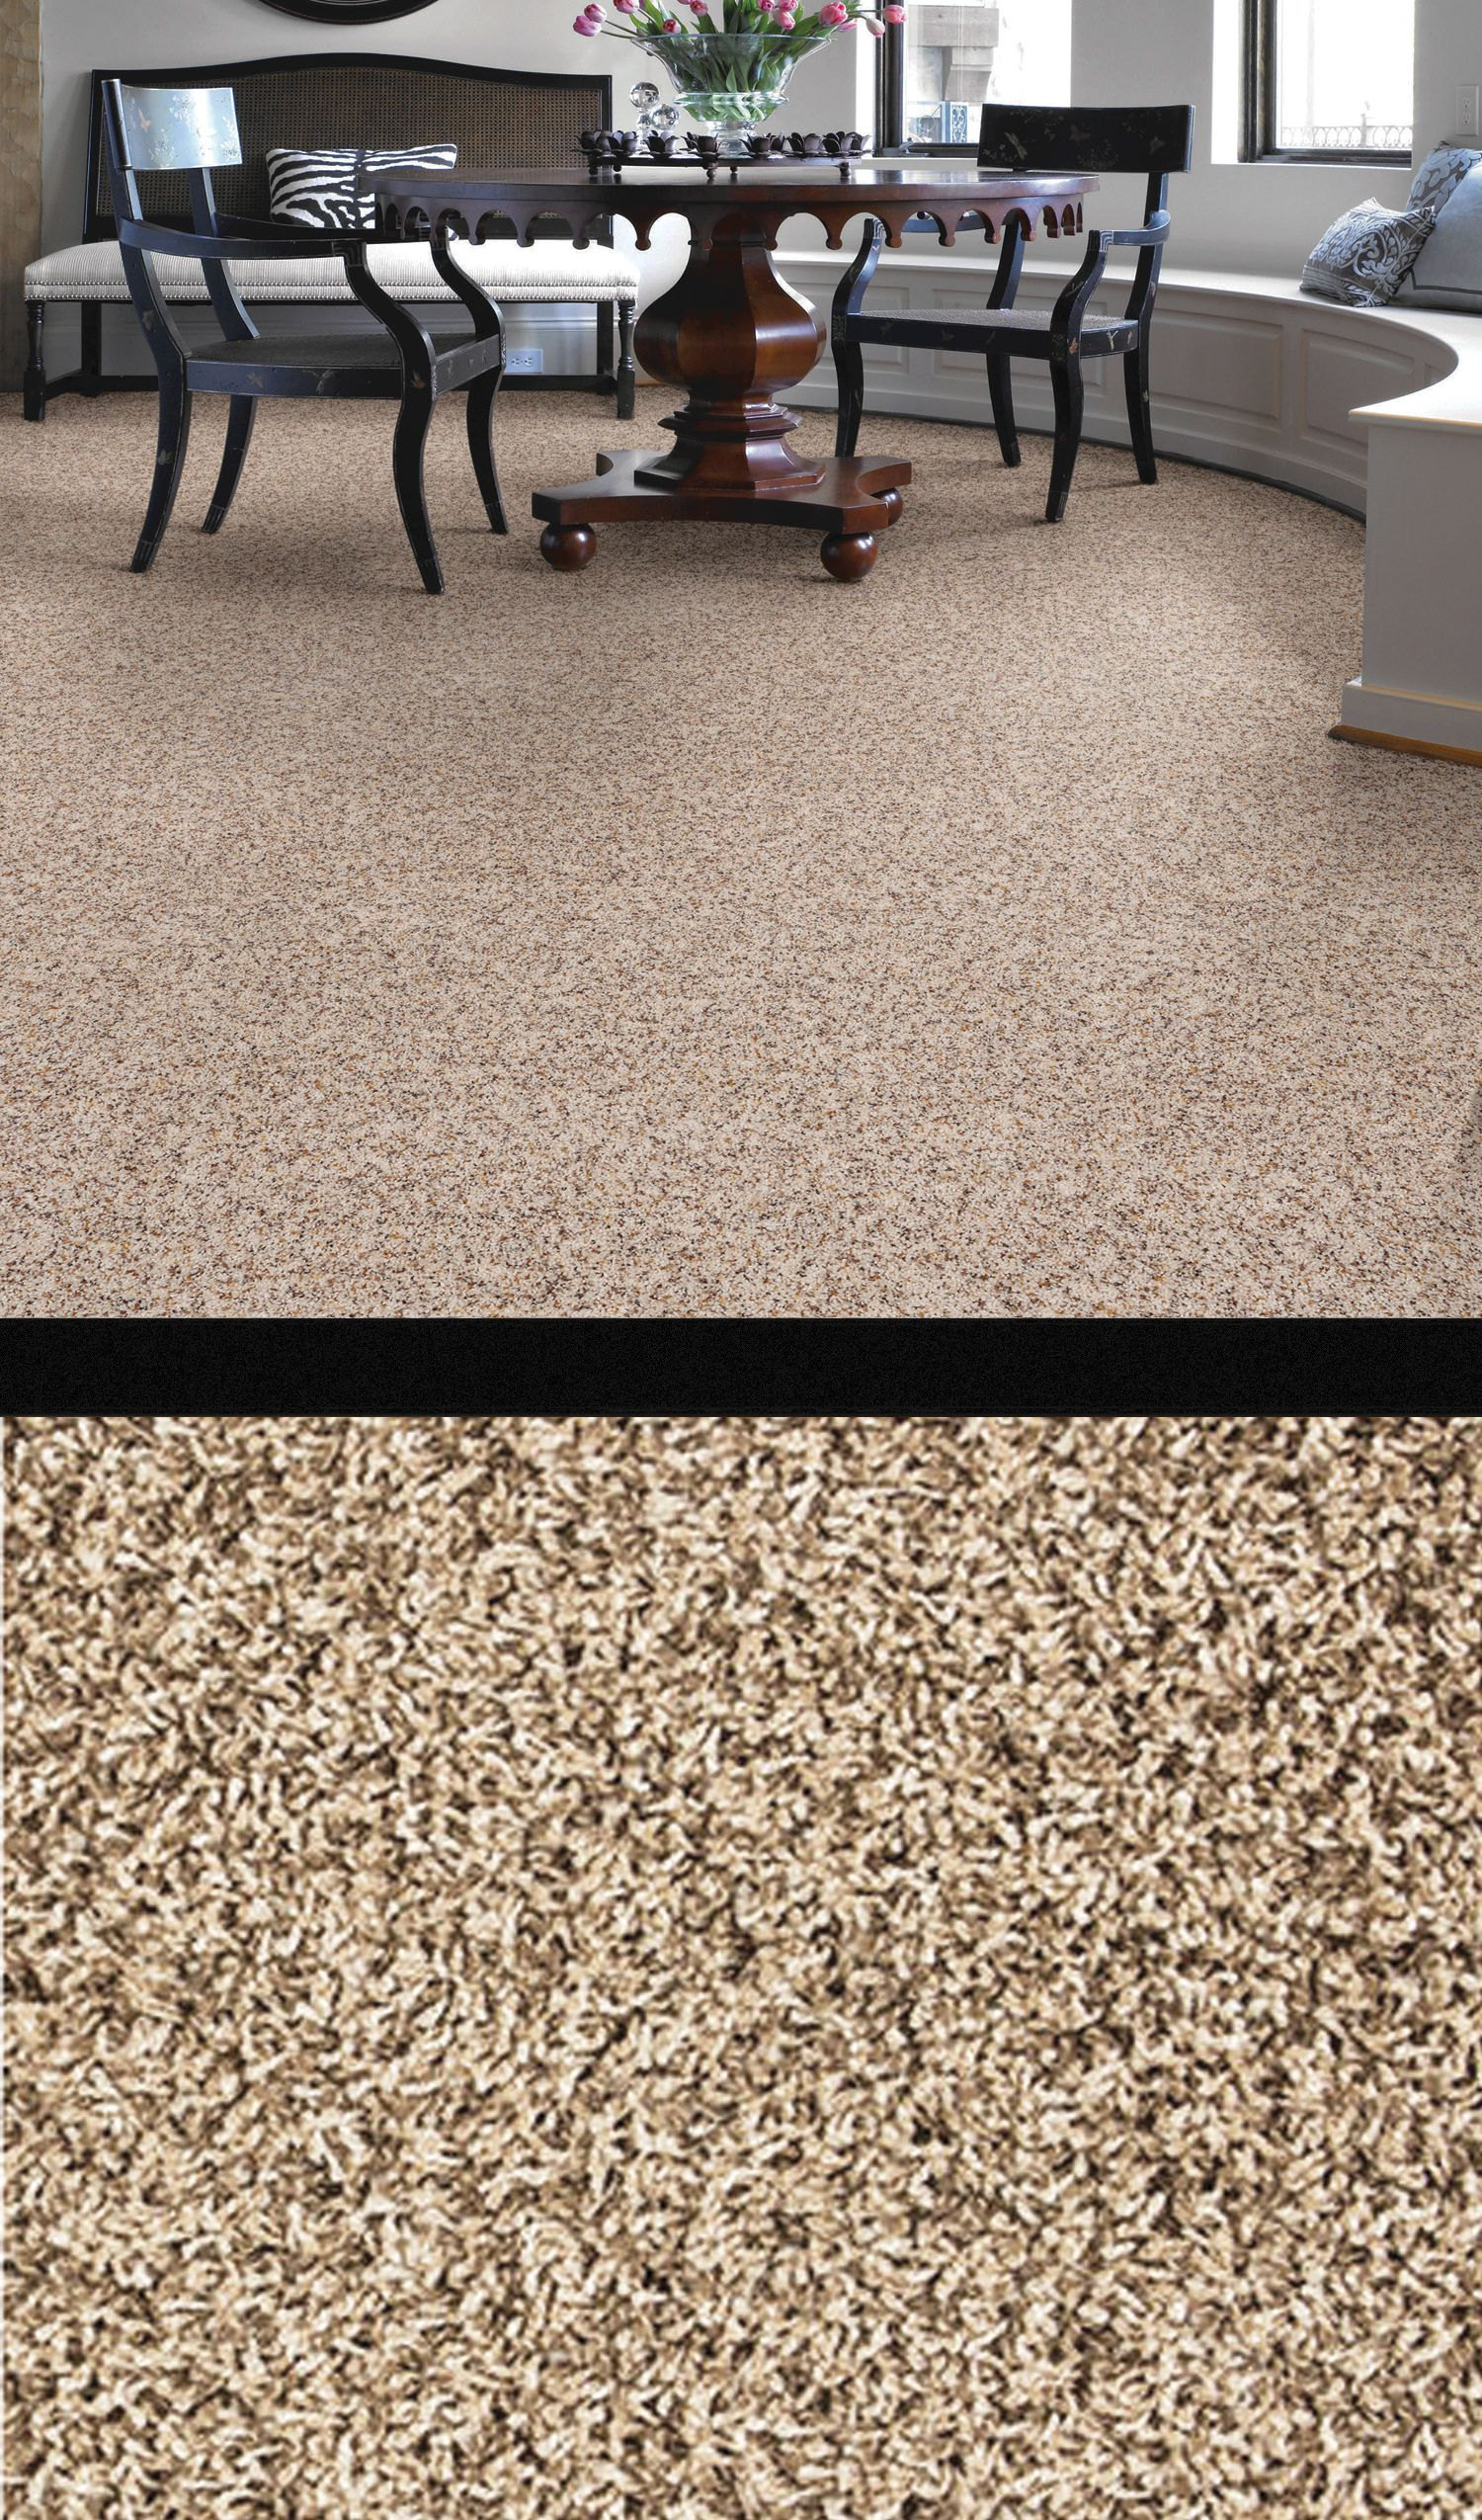 Add style to your home s floors with Shaw Grand View Plush Carpet